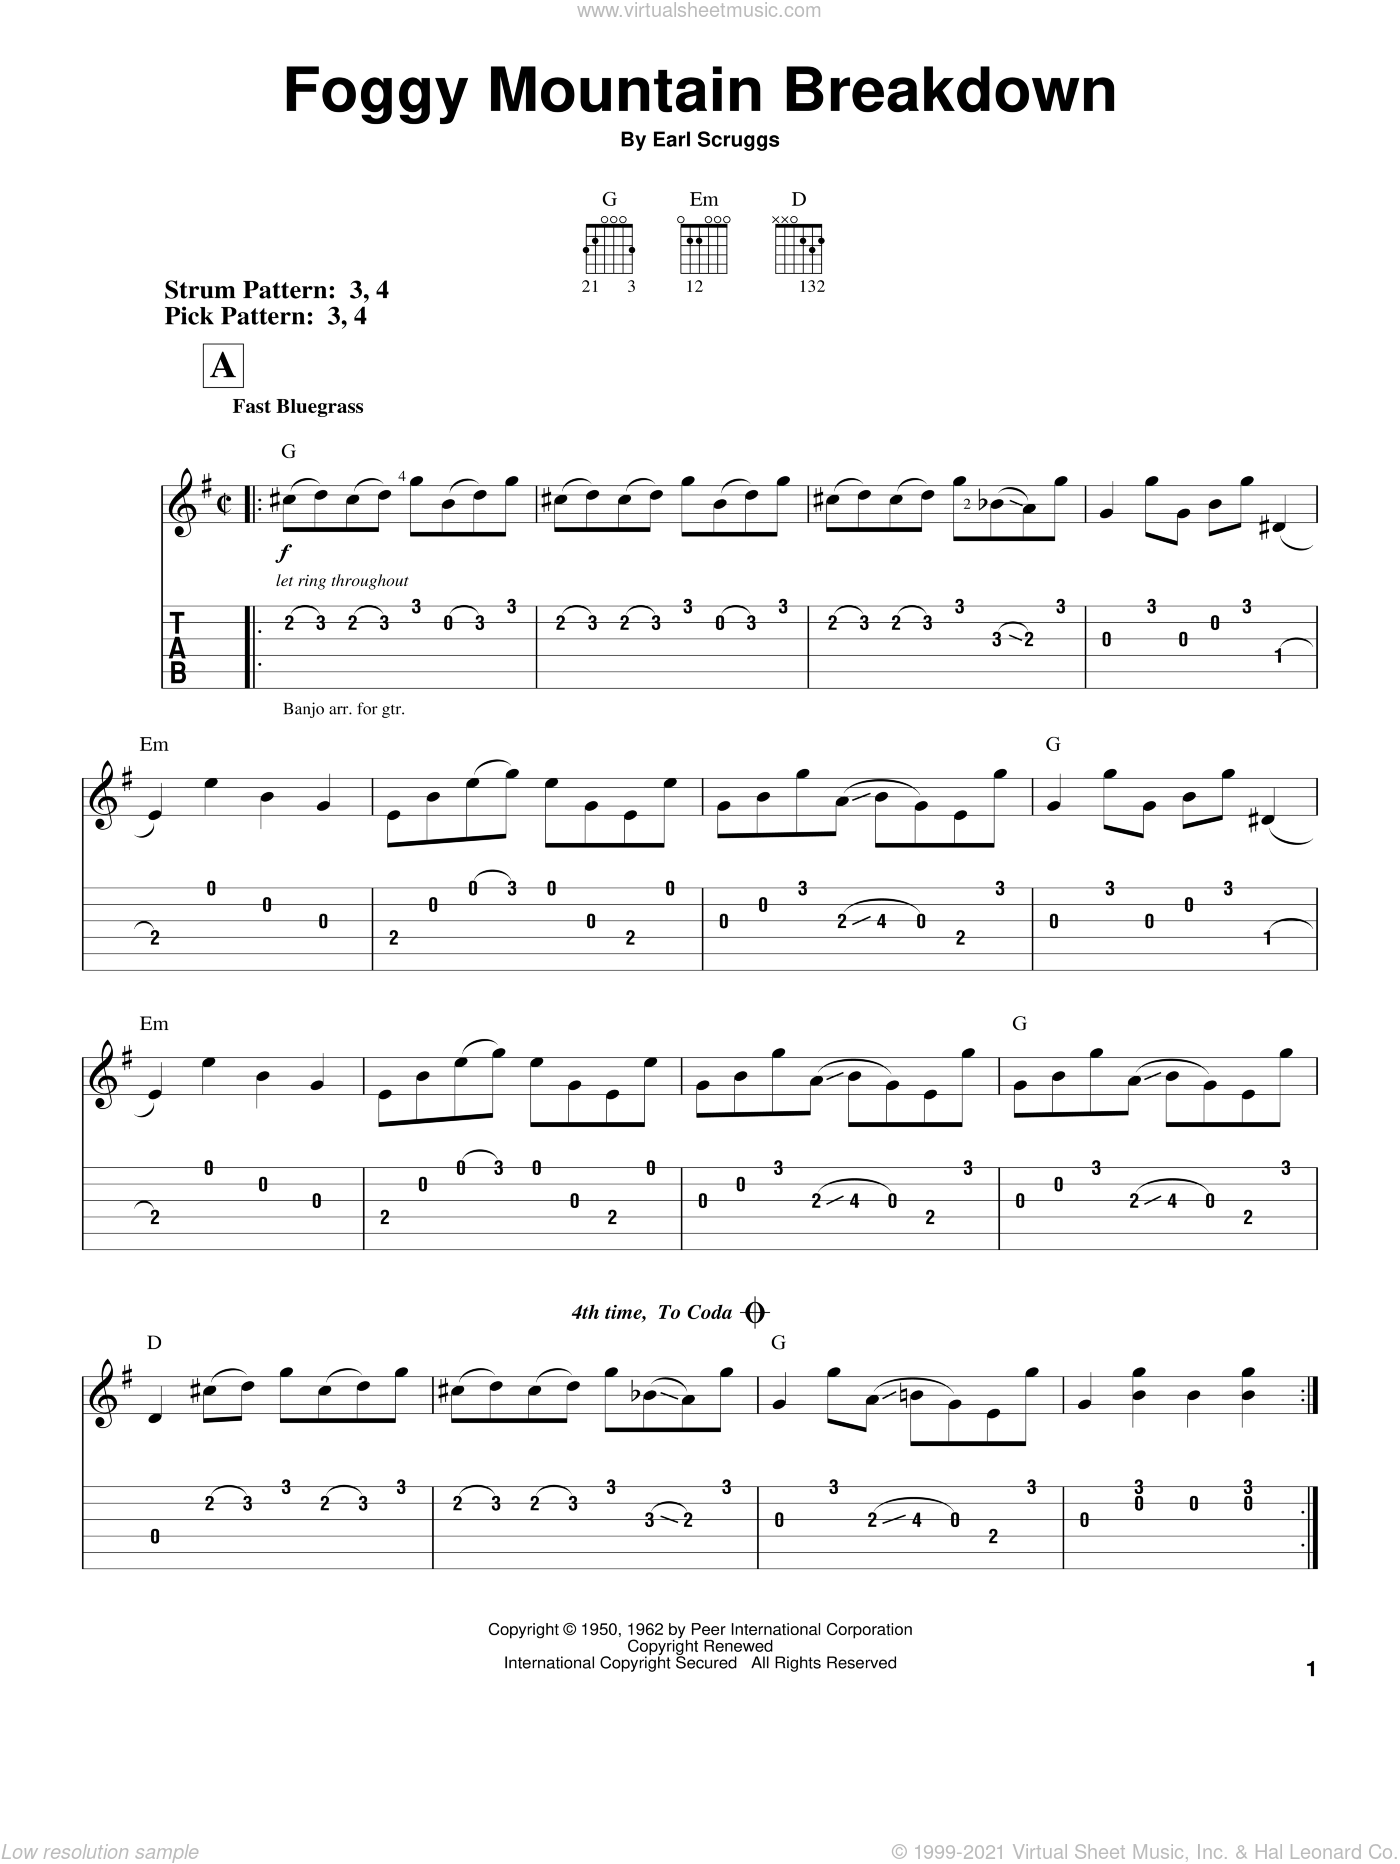 Foggy Mountain Breakdown sheet music for guitar solo (easy tablature) by Flatt & Scruggs, Lester Flatt and Earl Scruggs, easy guitar (easy tablature). Score Image Preview.